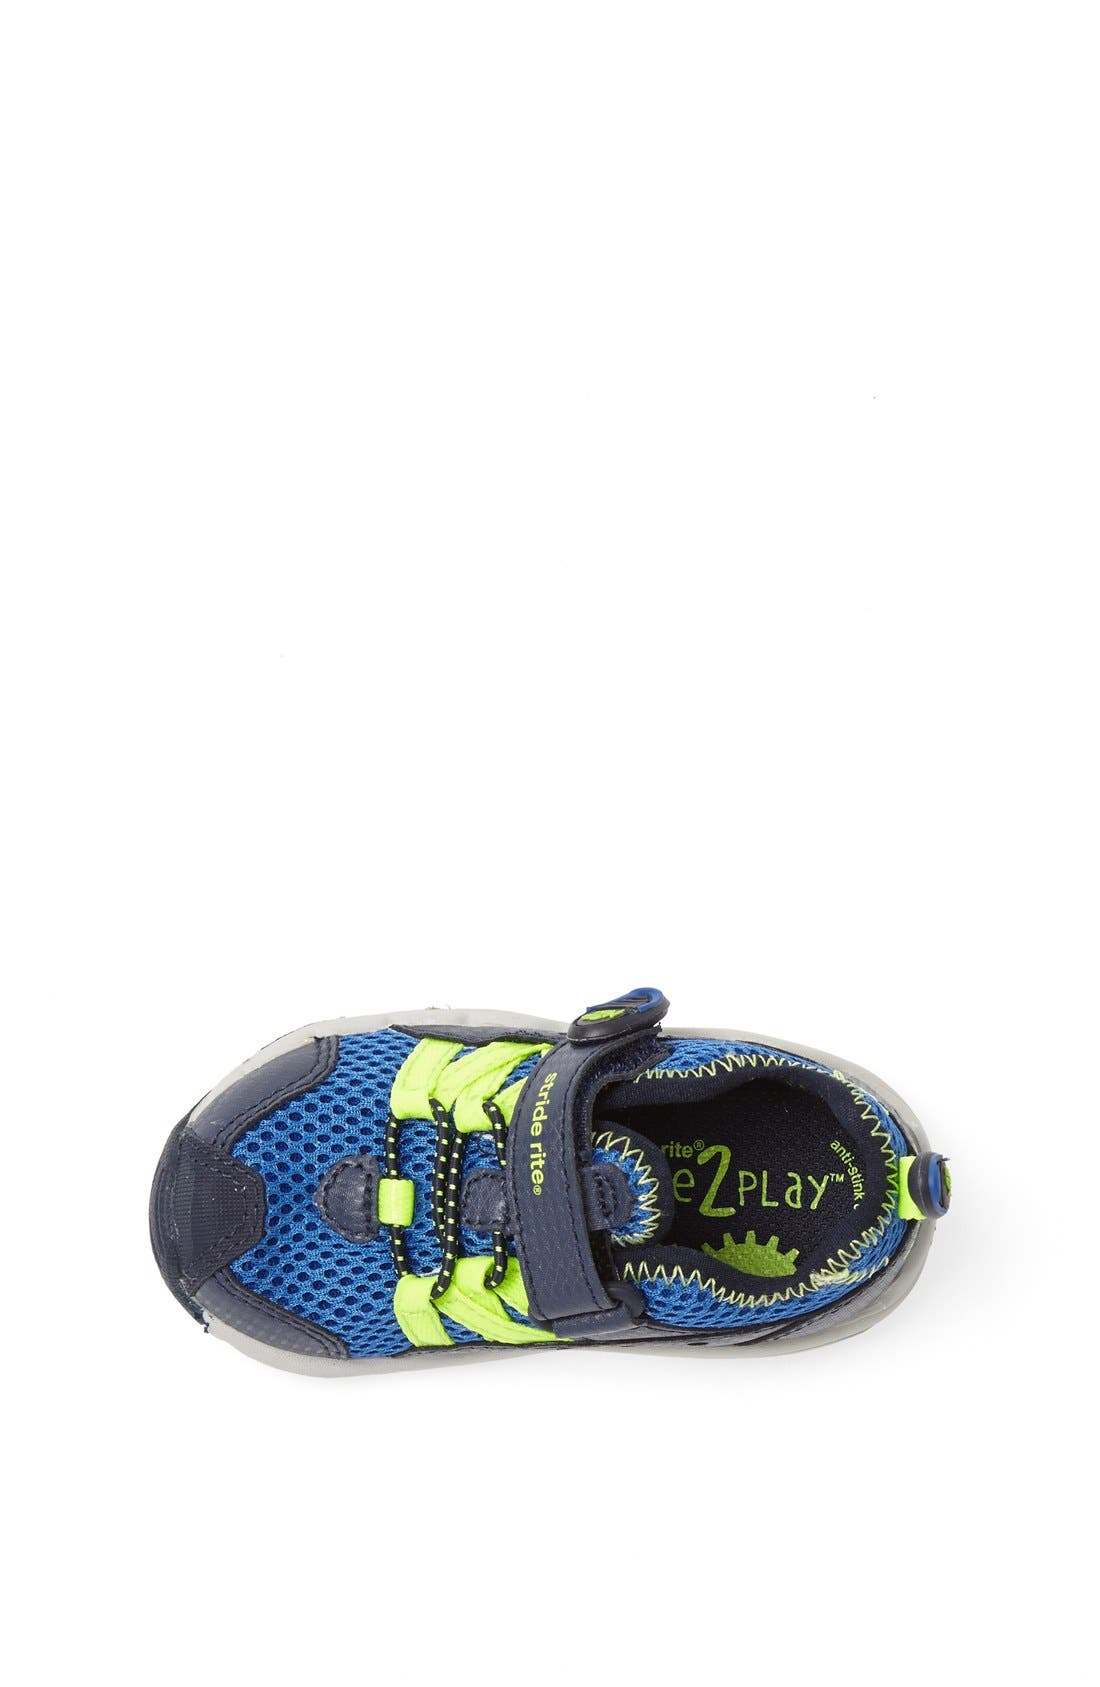 Alternate Image 3  - Stride Rite 'Made 2 Play™ - Finn' Sneaker (Baby, Walker & Toddler)